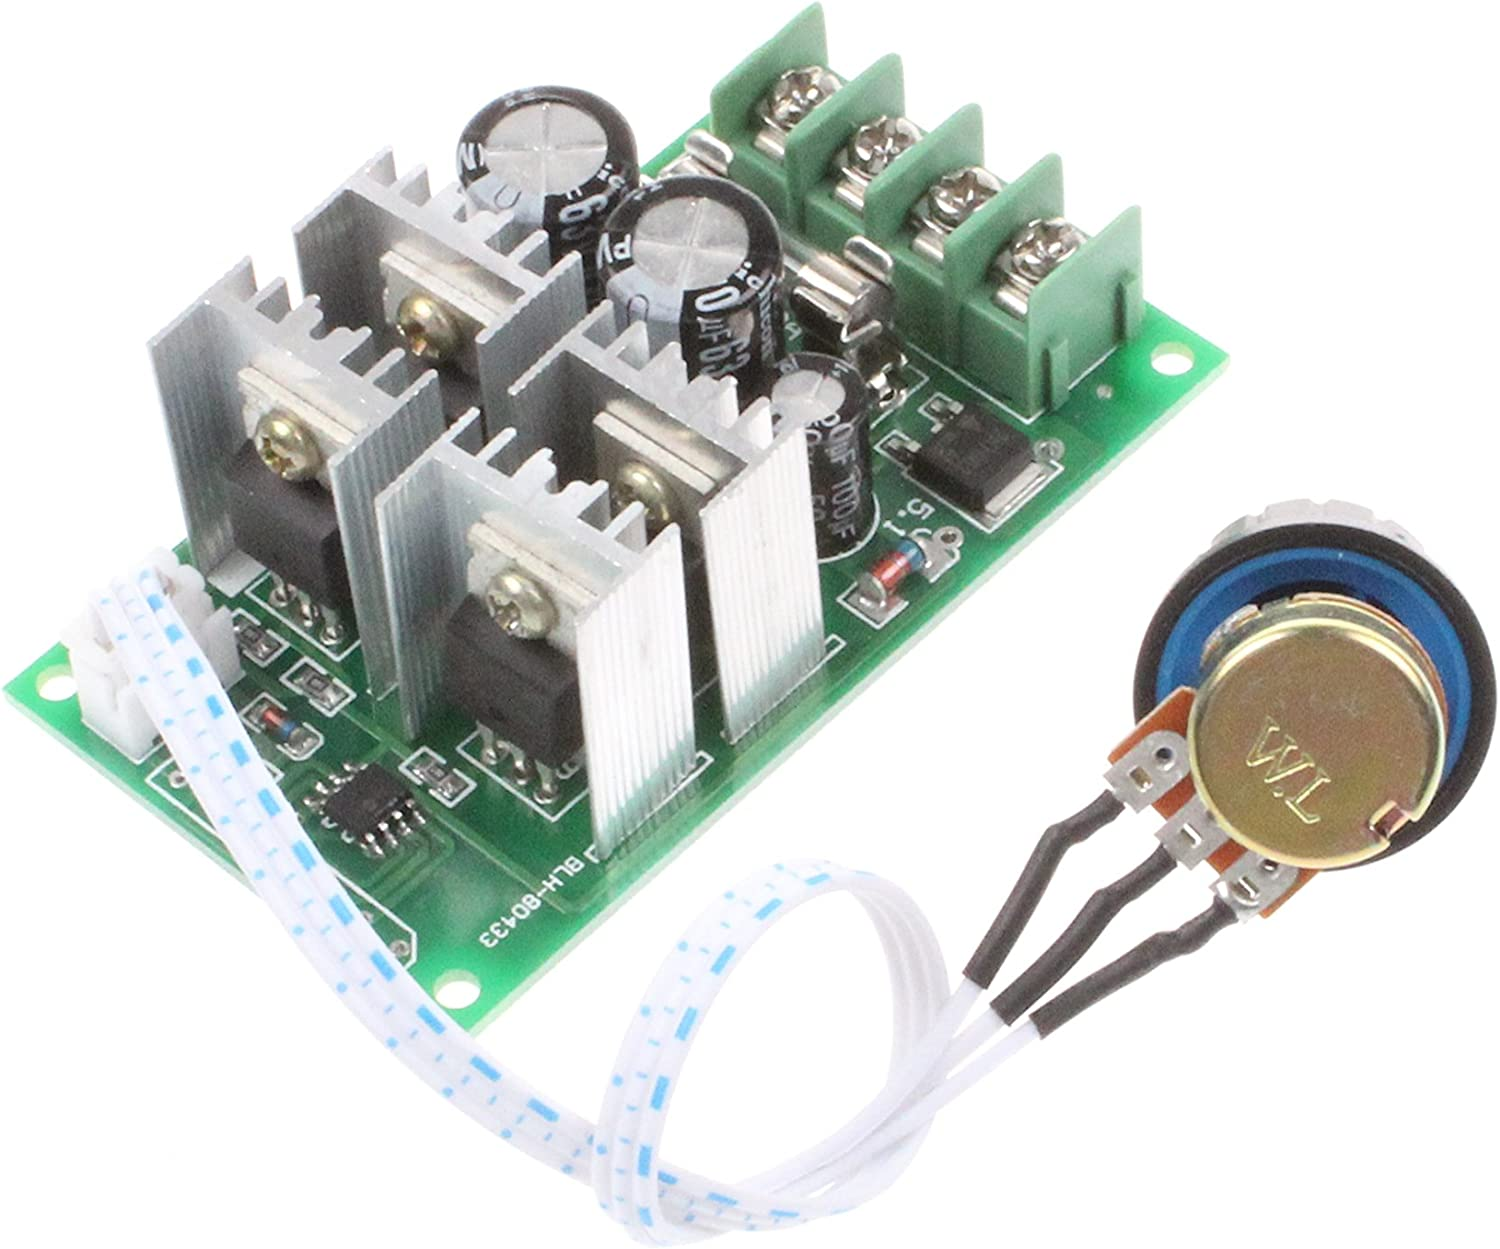 NOYITO PWM DC Motor Governor Controller 30A Max DC6-60V 12V 24V 36V 48V Brush DC Motor Controller Digital Display 0-100/% Speed Regulation 30A Digital Display